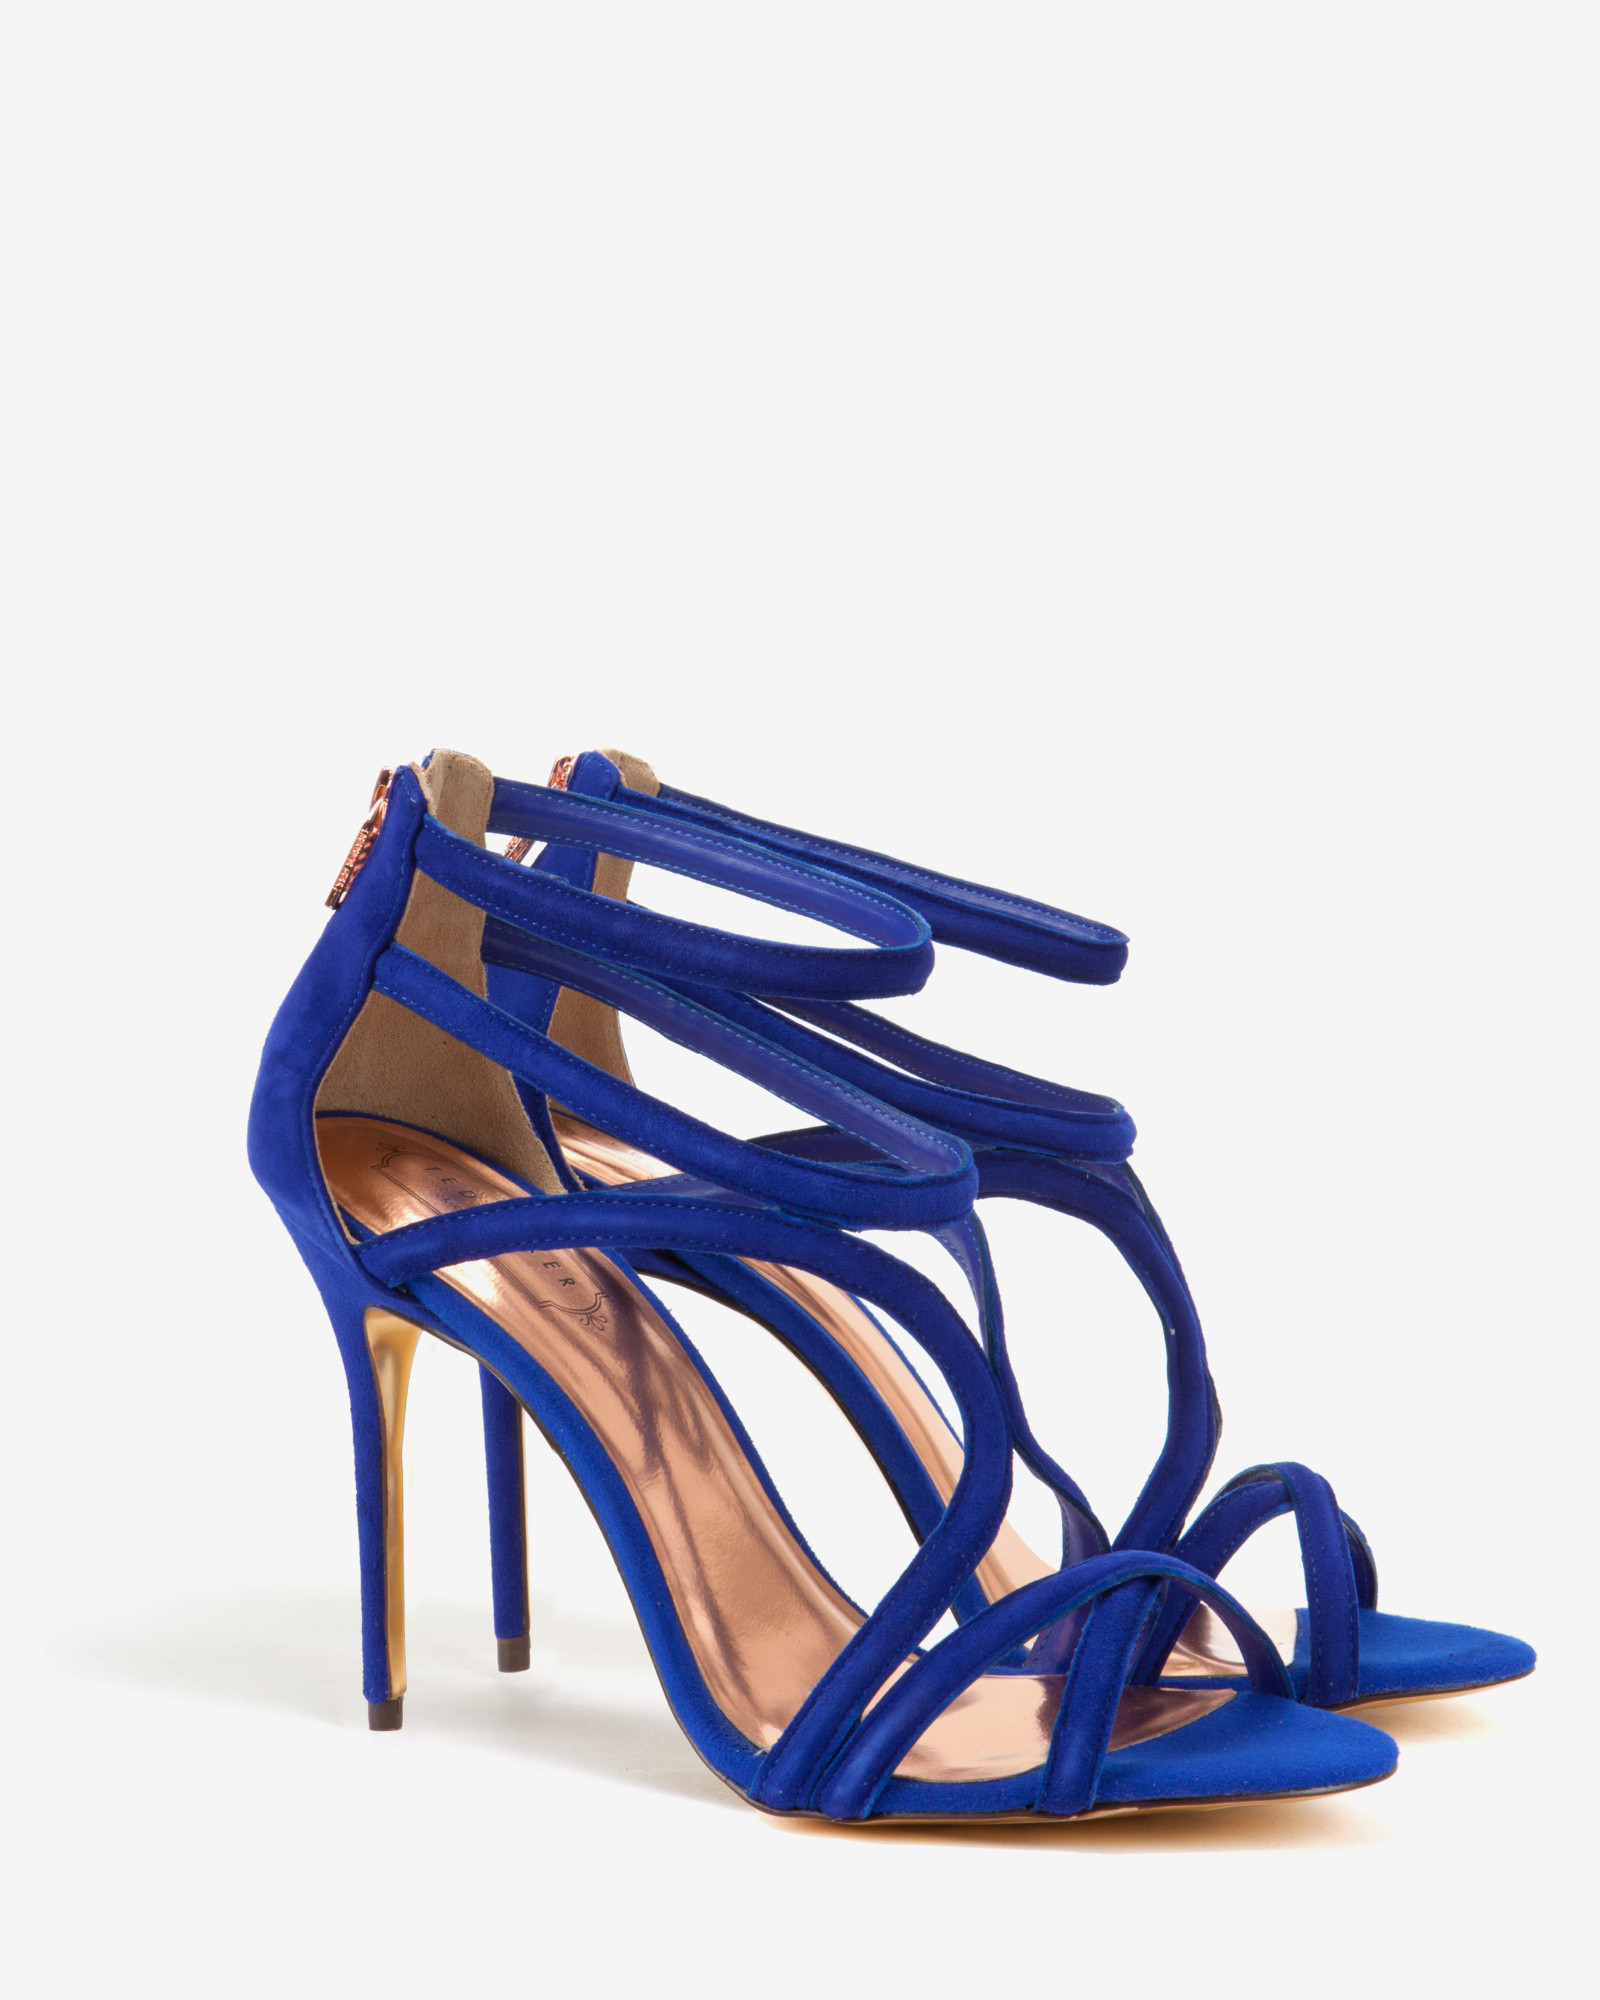 b59d30fb9df Ted Baker Blue Suede Wrap Around Gladiator Sandals